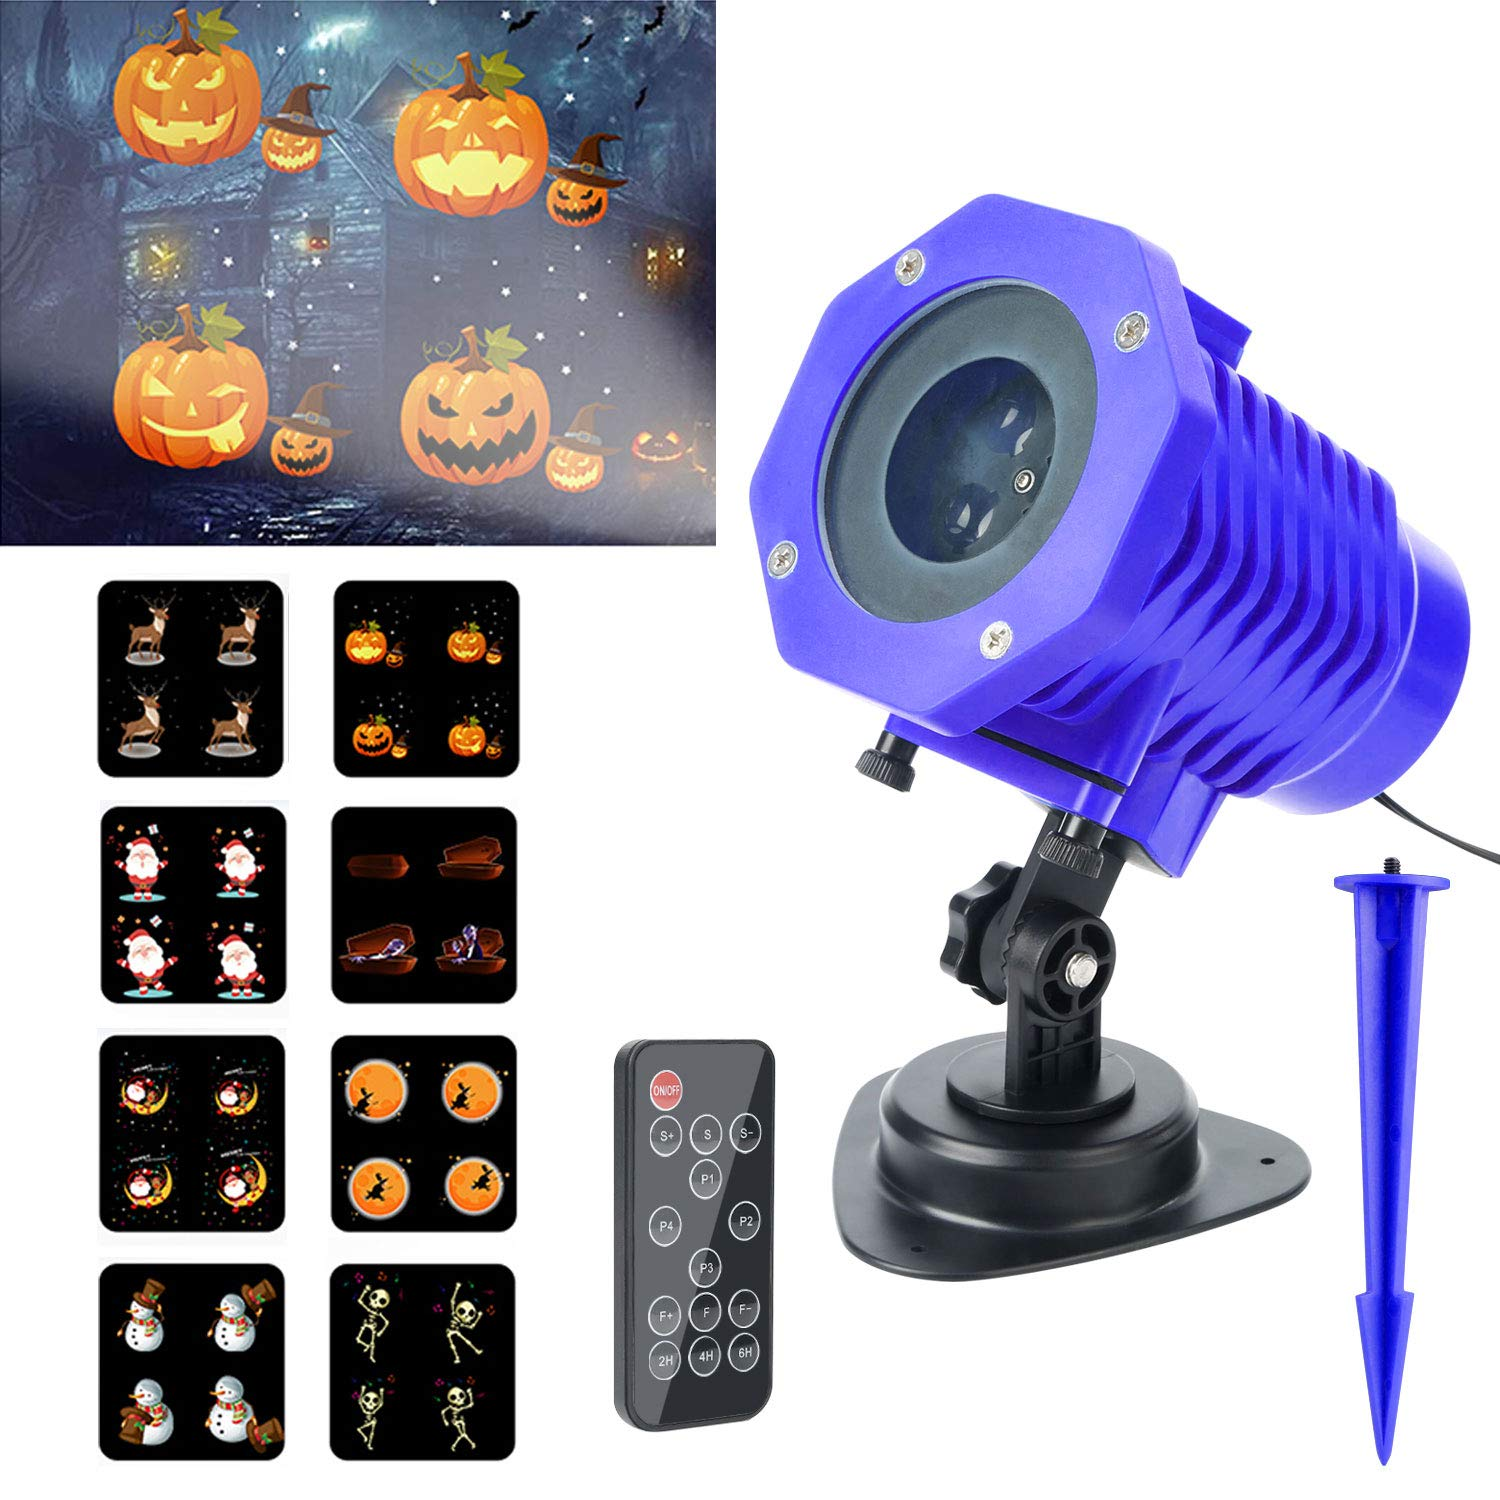 LED Projector Lights, Elegant Choise 2018 New Animated Projector Lights 8 Slides Wireless Remote Control LED Christmas Landscape Projector Light for Decoration Lighting on Christmas Halloween Holiday